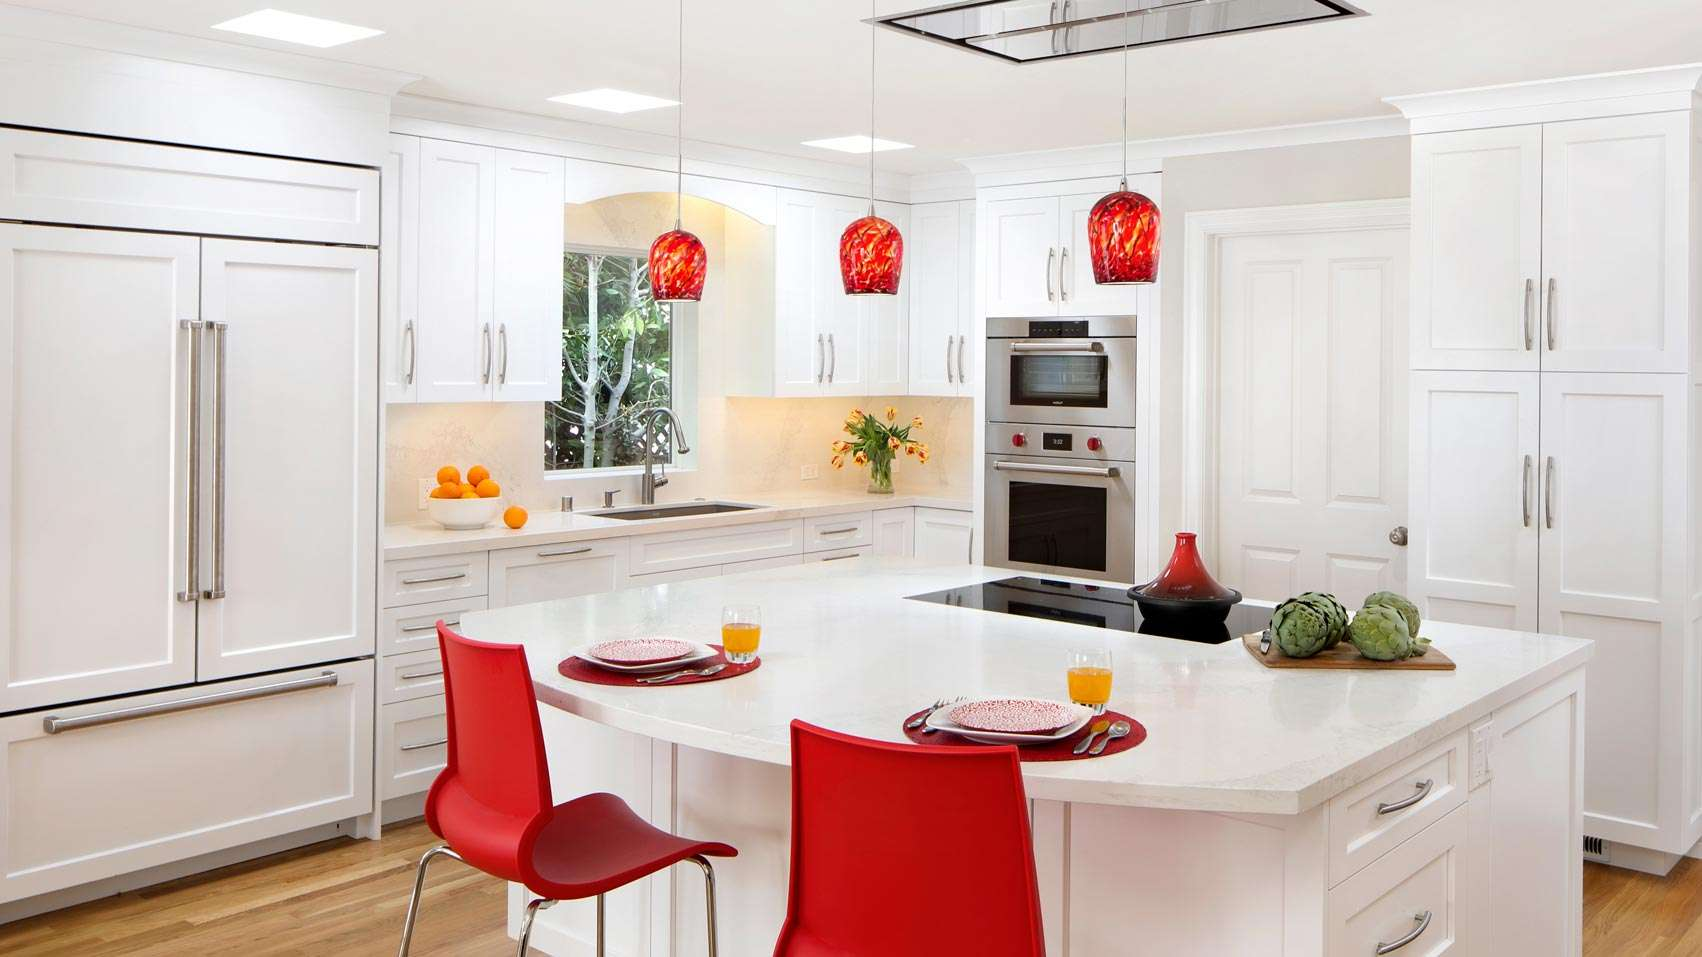 Peninsula Vs Island How To Know Which Works In Your Kitchen Harrell Remodeling Inc Design Build